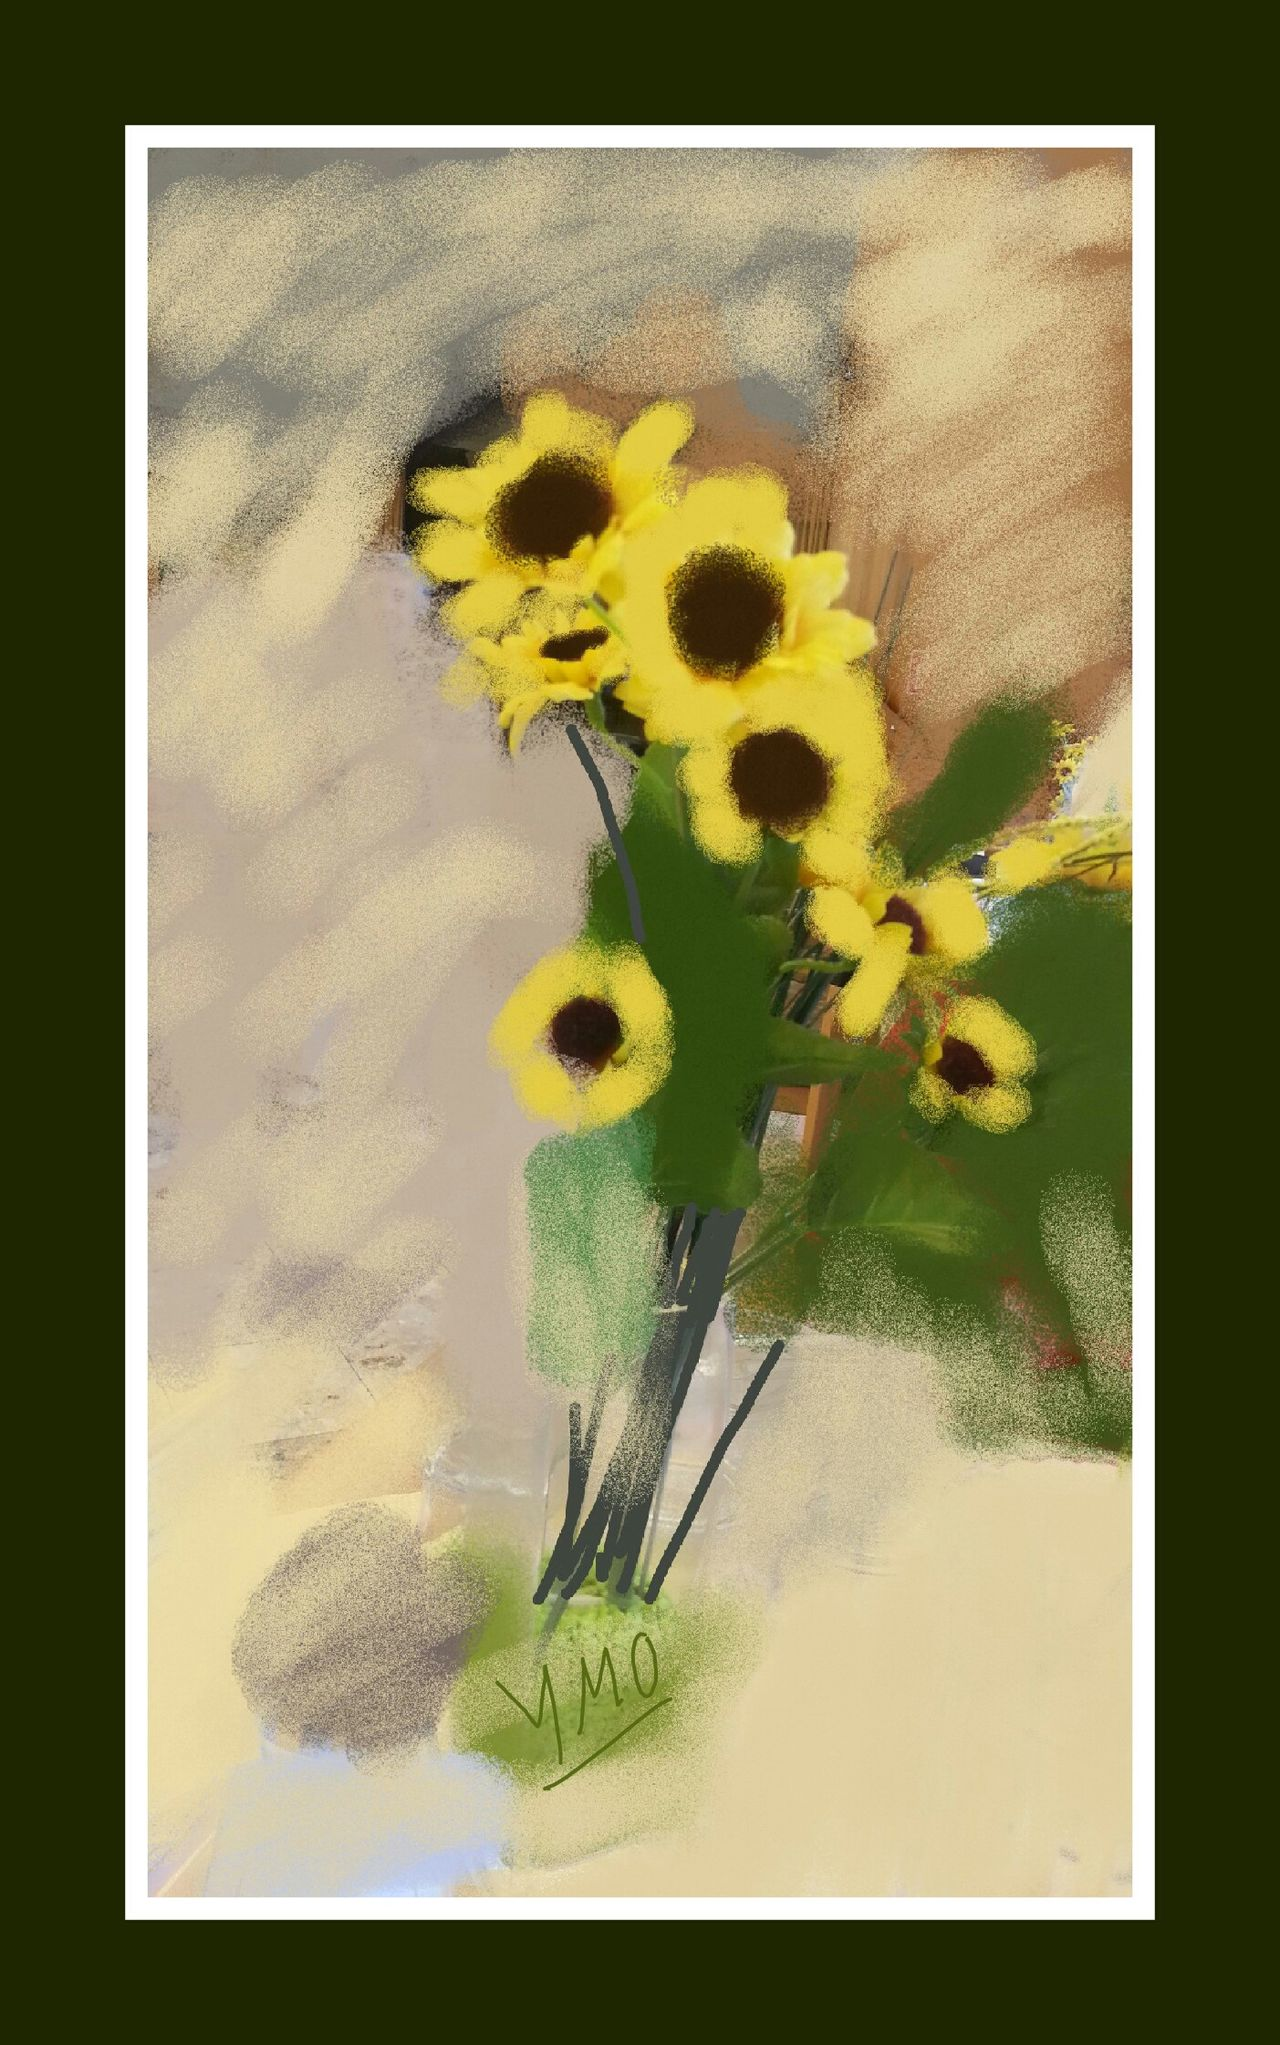 Fleurs Jaunes Bouquet Inspirations Vienna Ymoart YMO Hello World Couleurs Indoors  Nature Composition Stilleben Gemaeldegalerie Berlin Digital Art Digital Painting Peinture